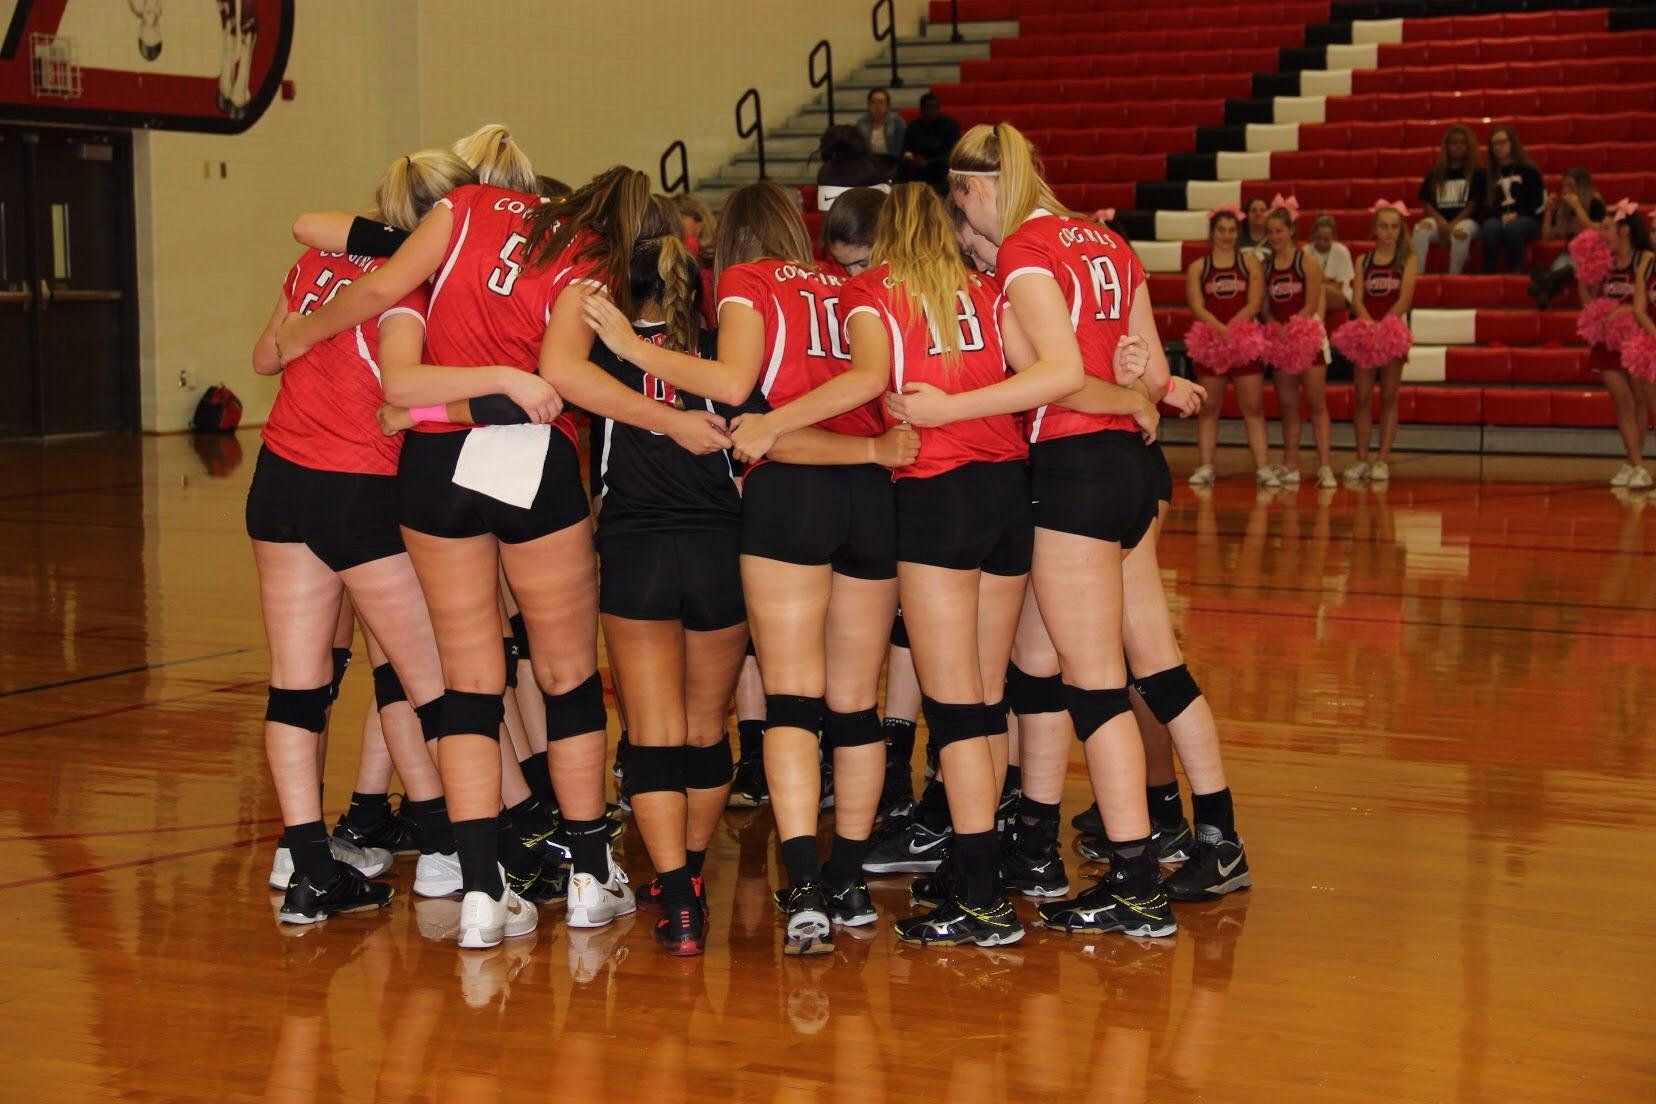 Coppell High School Cowgirl varsity volleyball team huddles to talk and congratulate each other after the win against Trinity High School. The Cowgirls won all three sets, the first with a score of 25-9, 25-17, and 25-11 on Friday night's game in the CHS large gym. Photo by Megan Winkle.